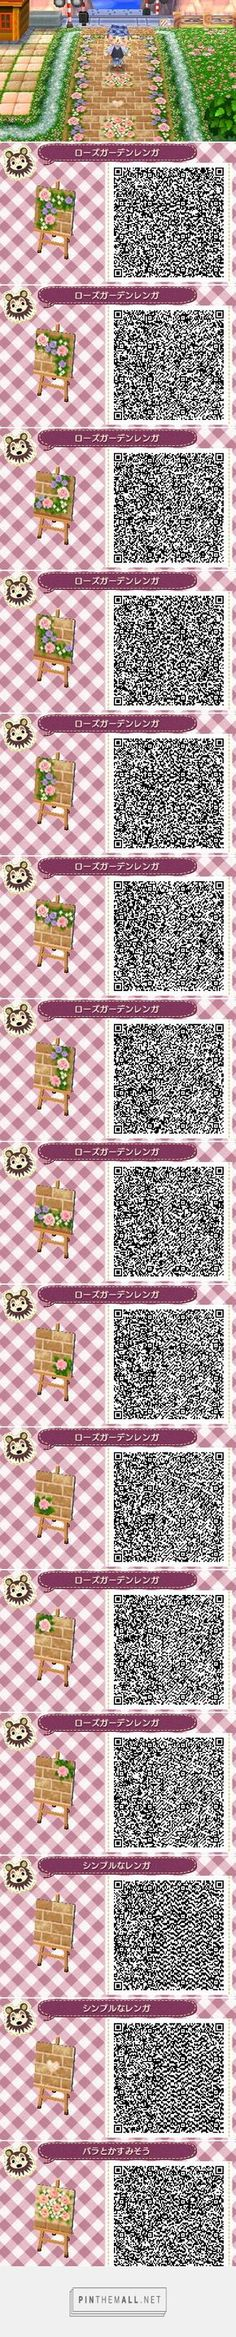 ACNL/ACHHD QR CODE-Brick path with pink and violet roses border and accents